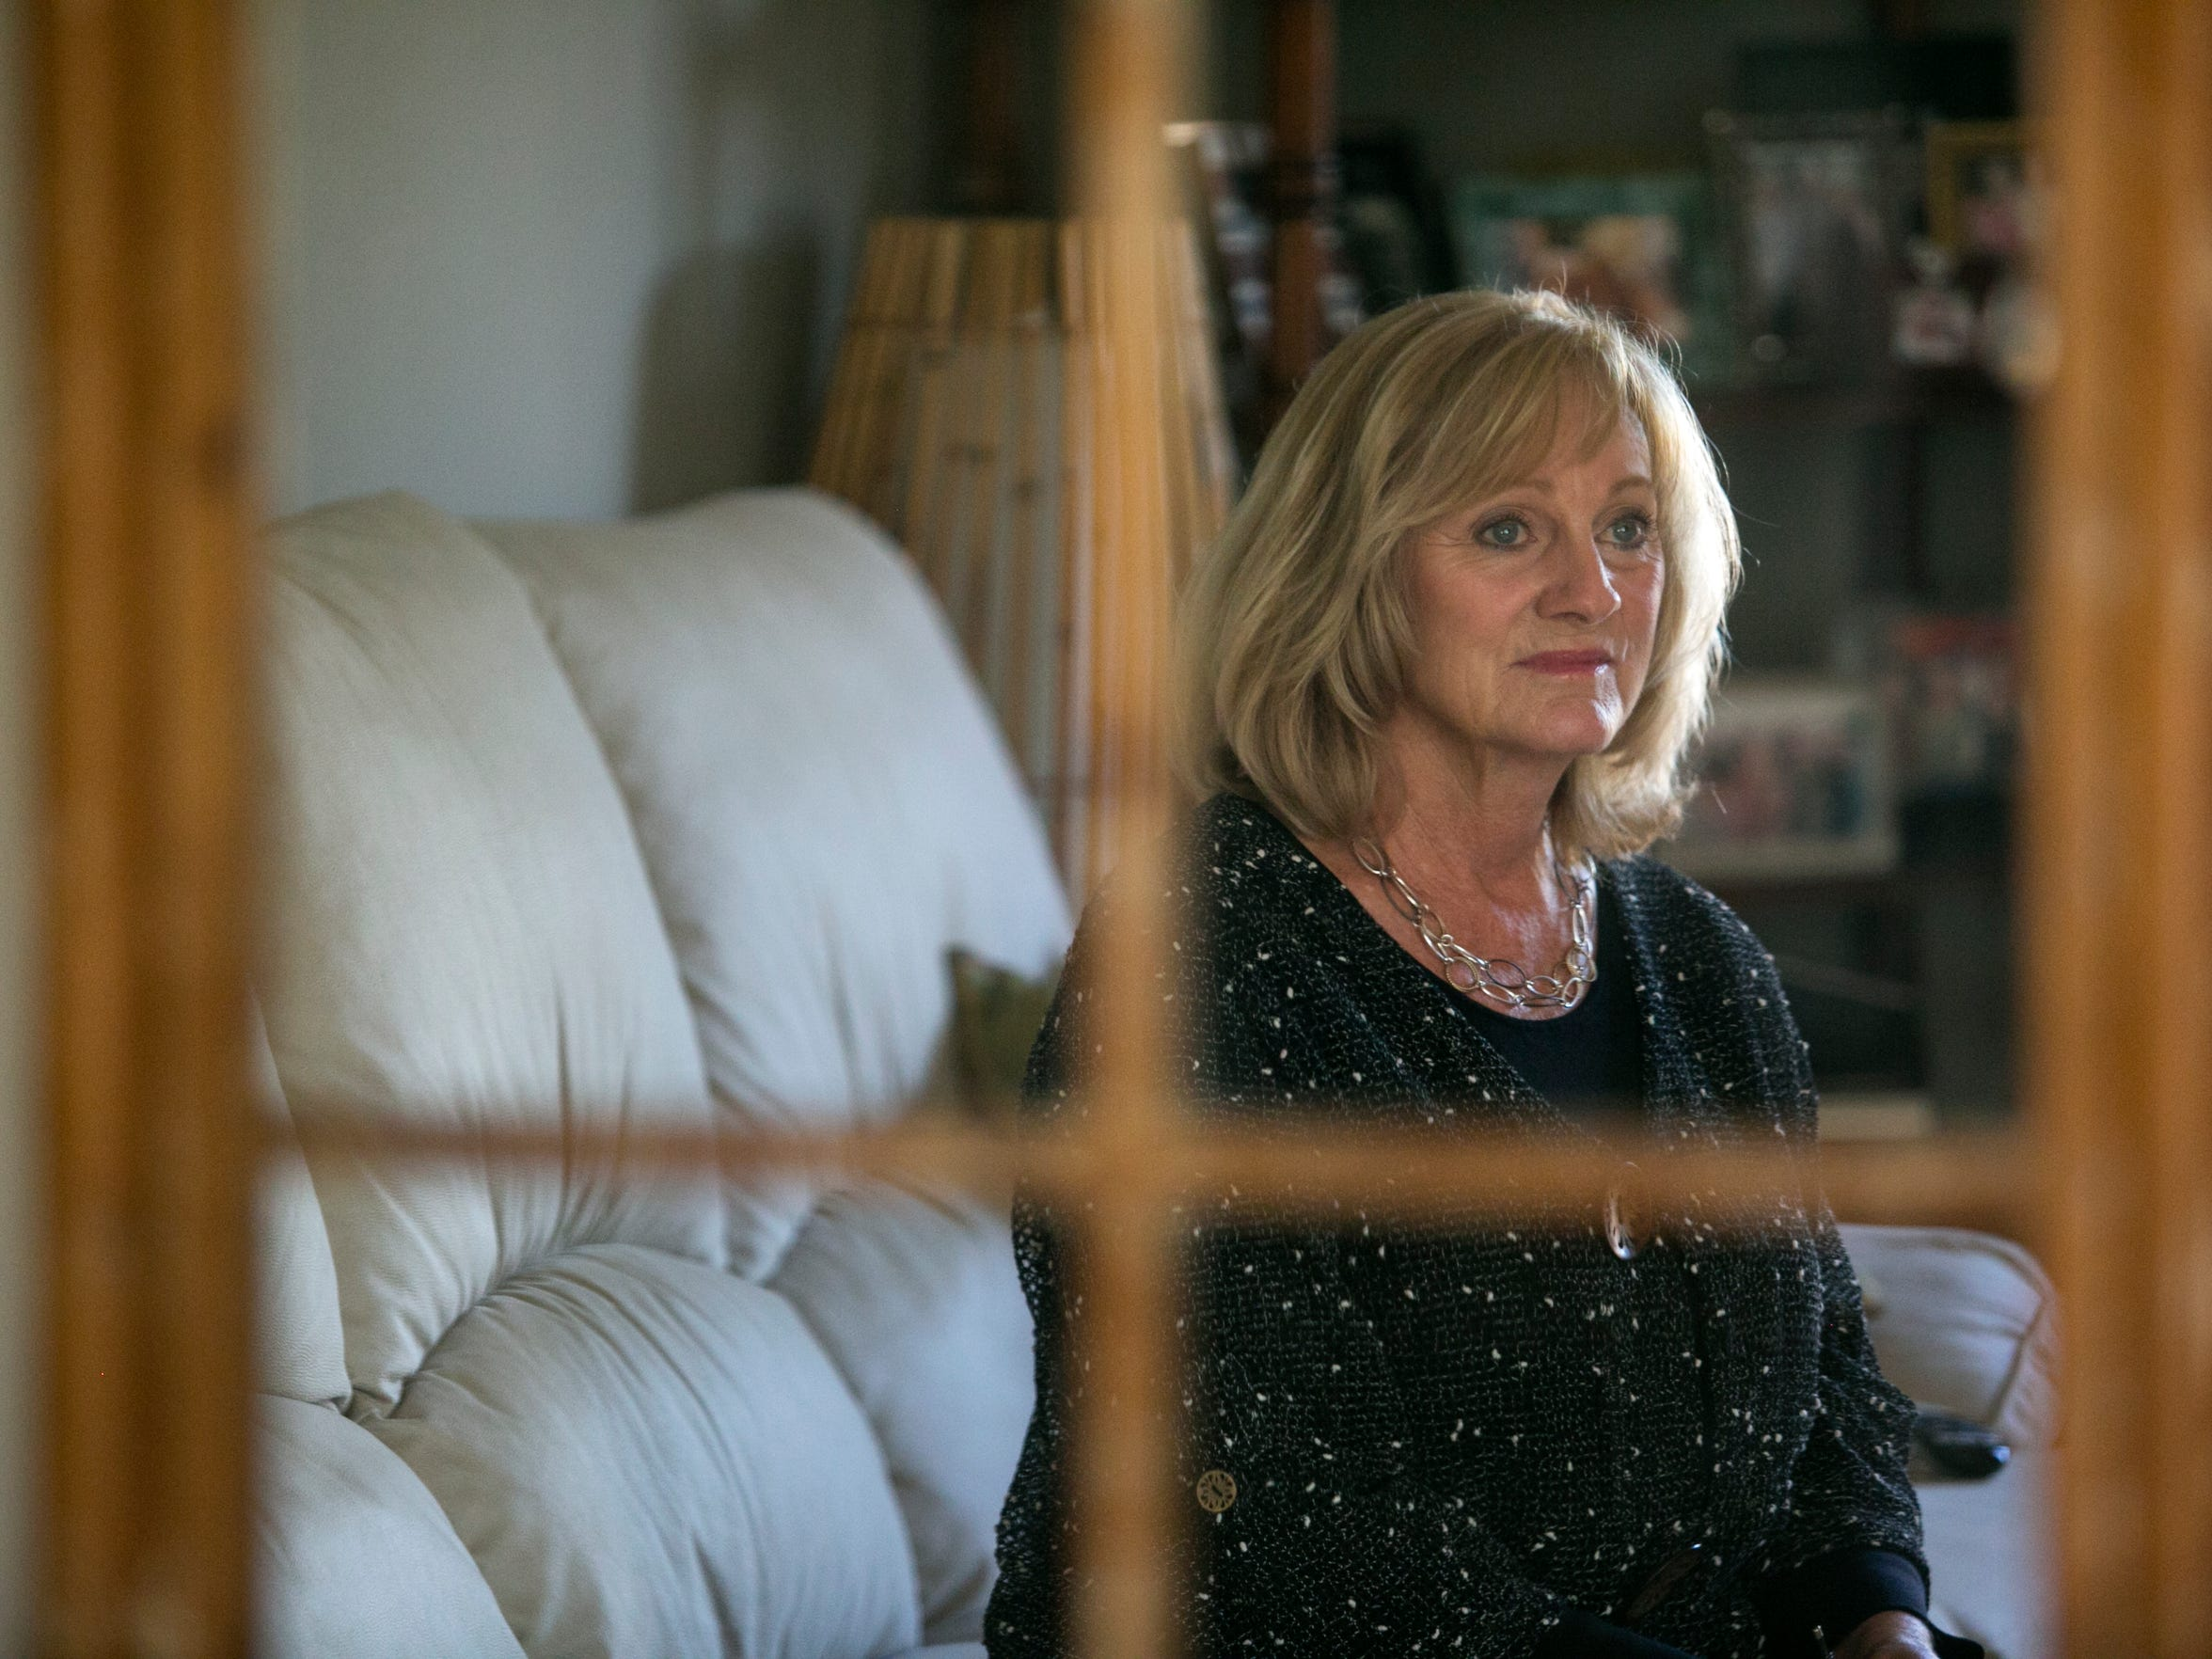 Sue Cesare was comfortably middle class until the recession hit.